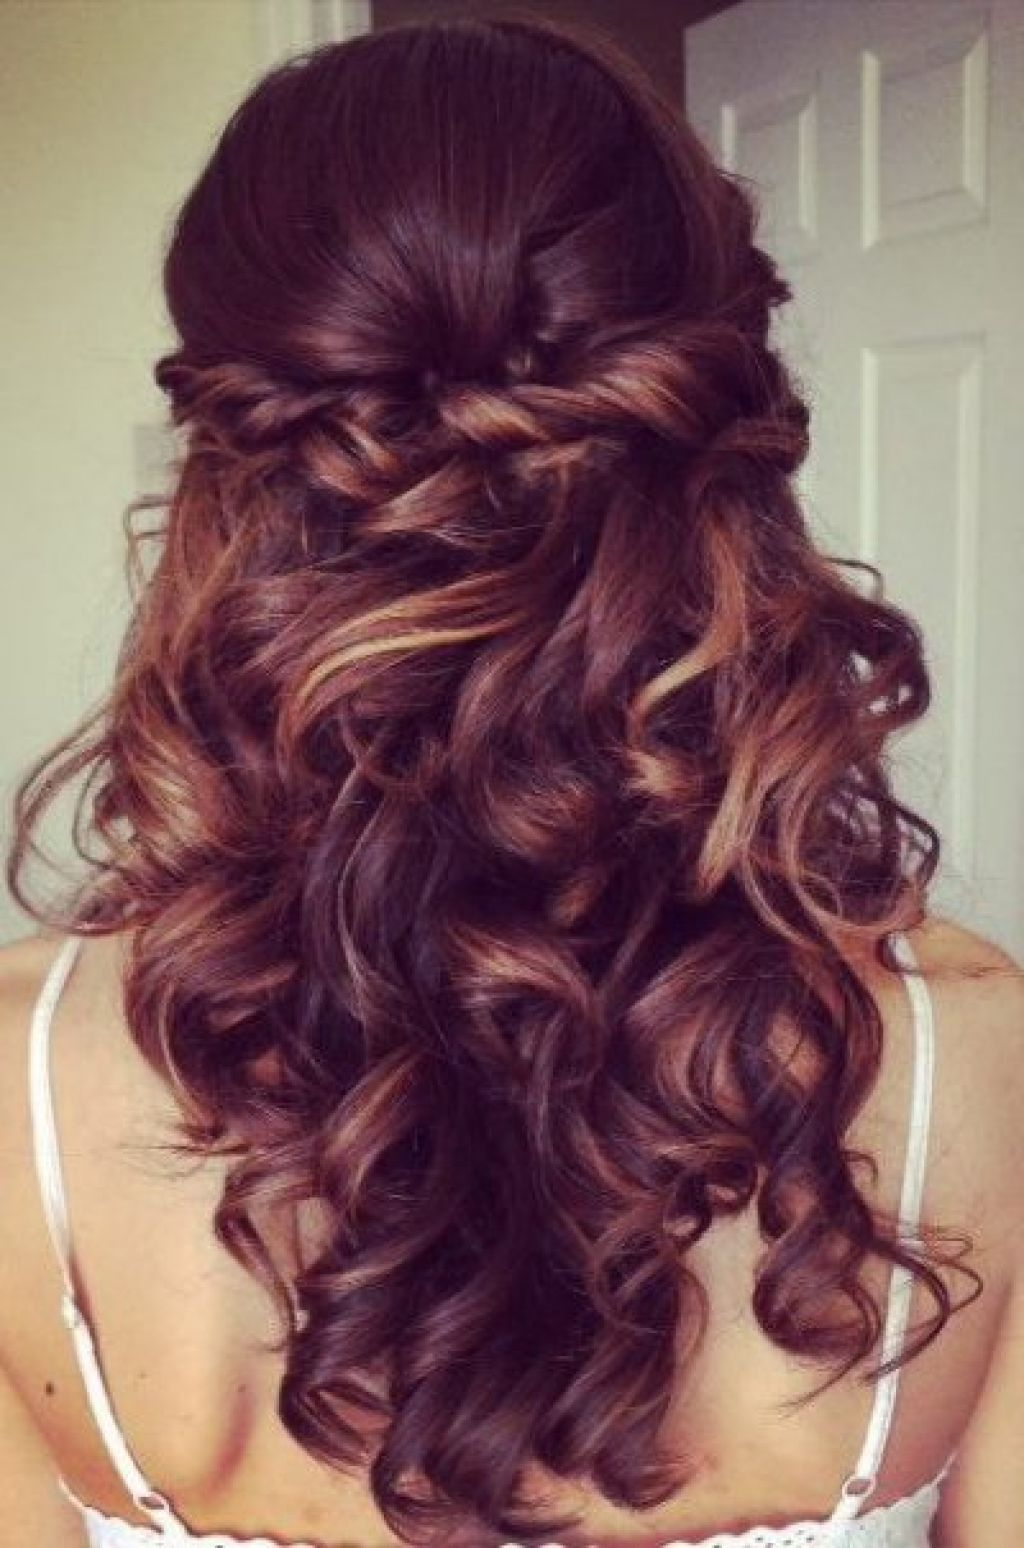 Curly Hairstyle : Prom Hairstyles For Medium Curly Hair Updo Mixed Regarding Latest Curly Medium Hairstyles For Prom (View 5 of 20)